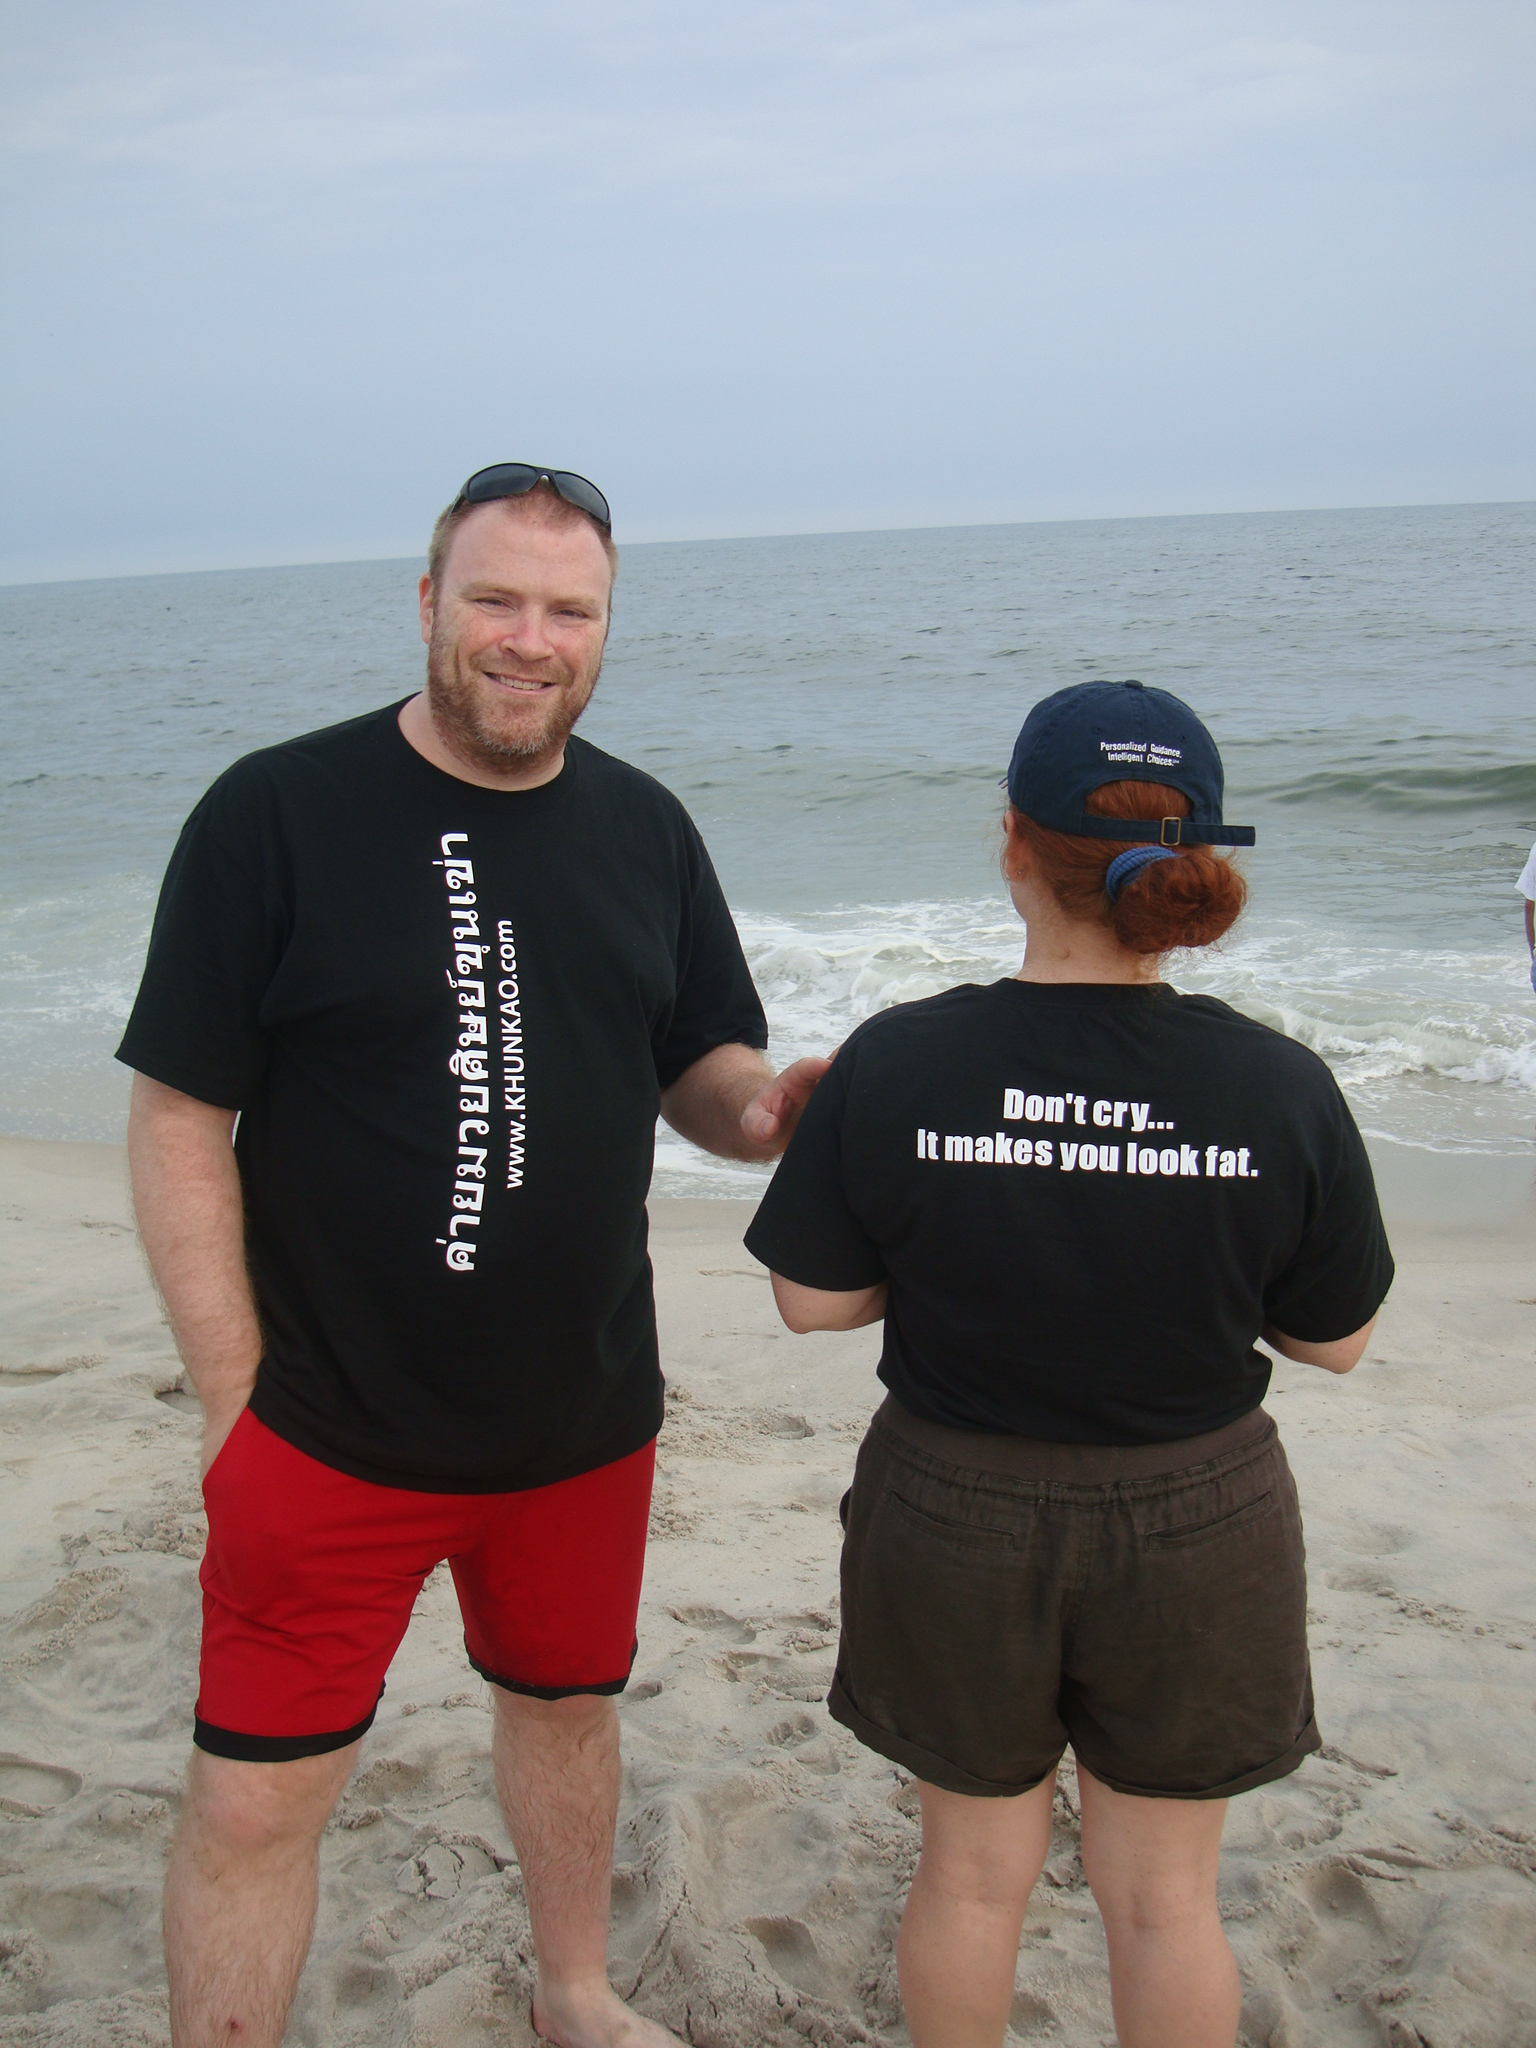 Custom t shirts for quot khun kao gym at jones beach in long